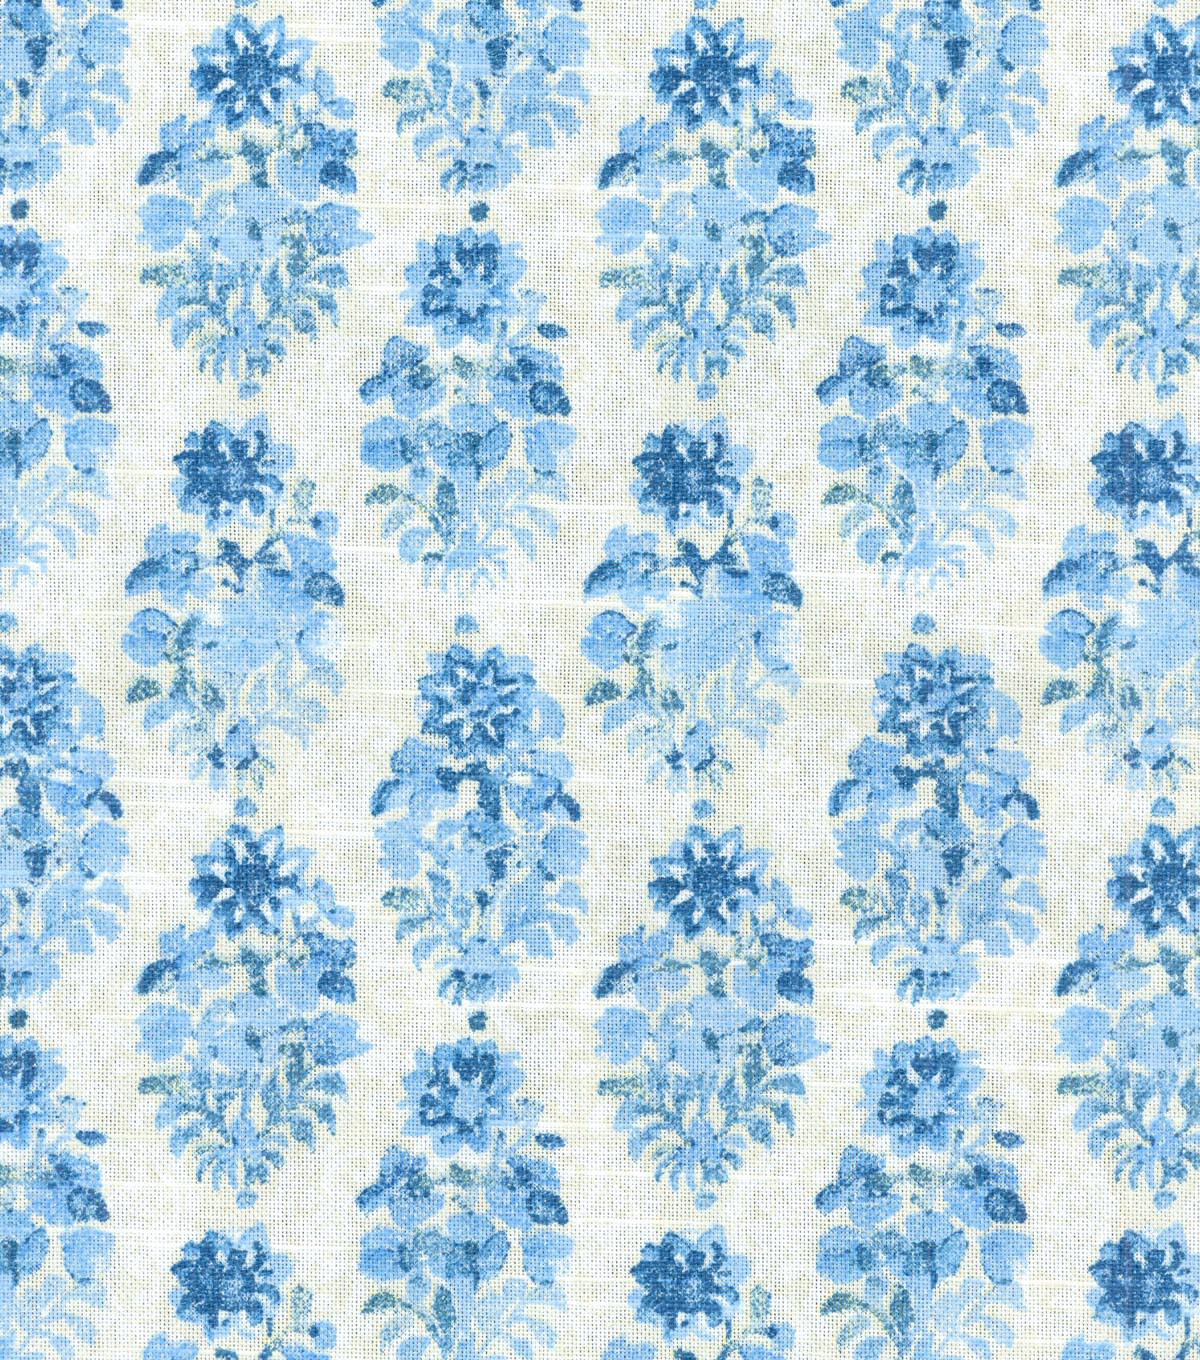 Home Decor 8\u0022x8\u0022 Swatch Fabric-IMAN Home Petite Batik Porcelain